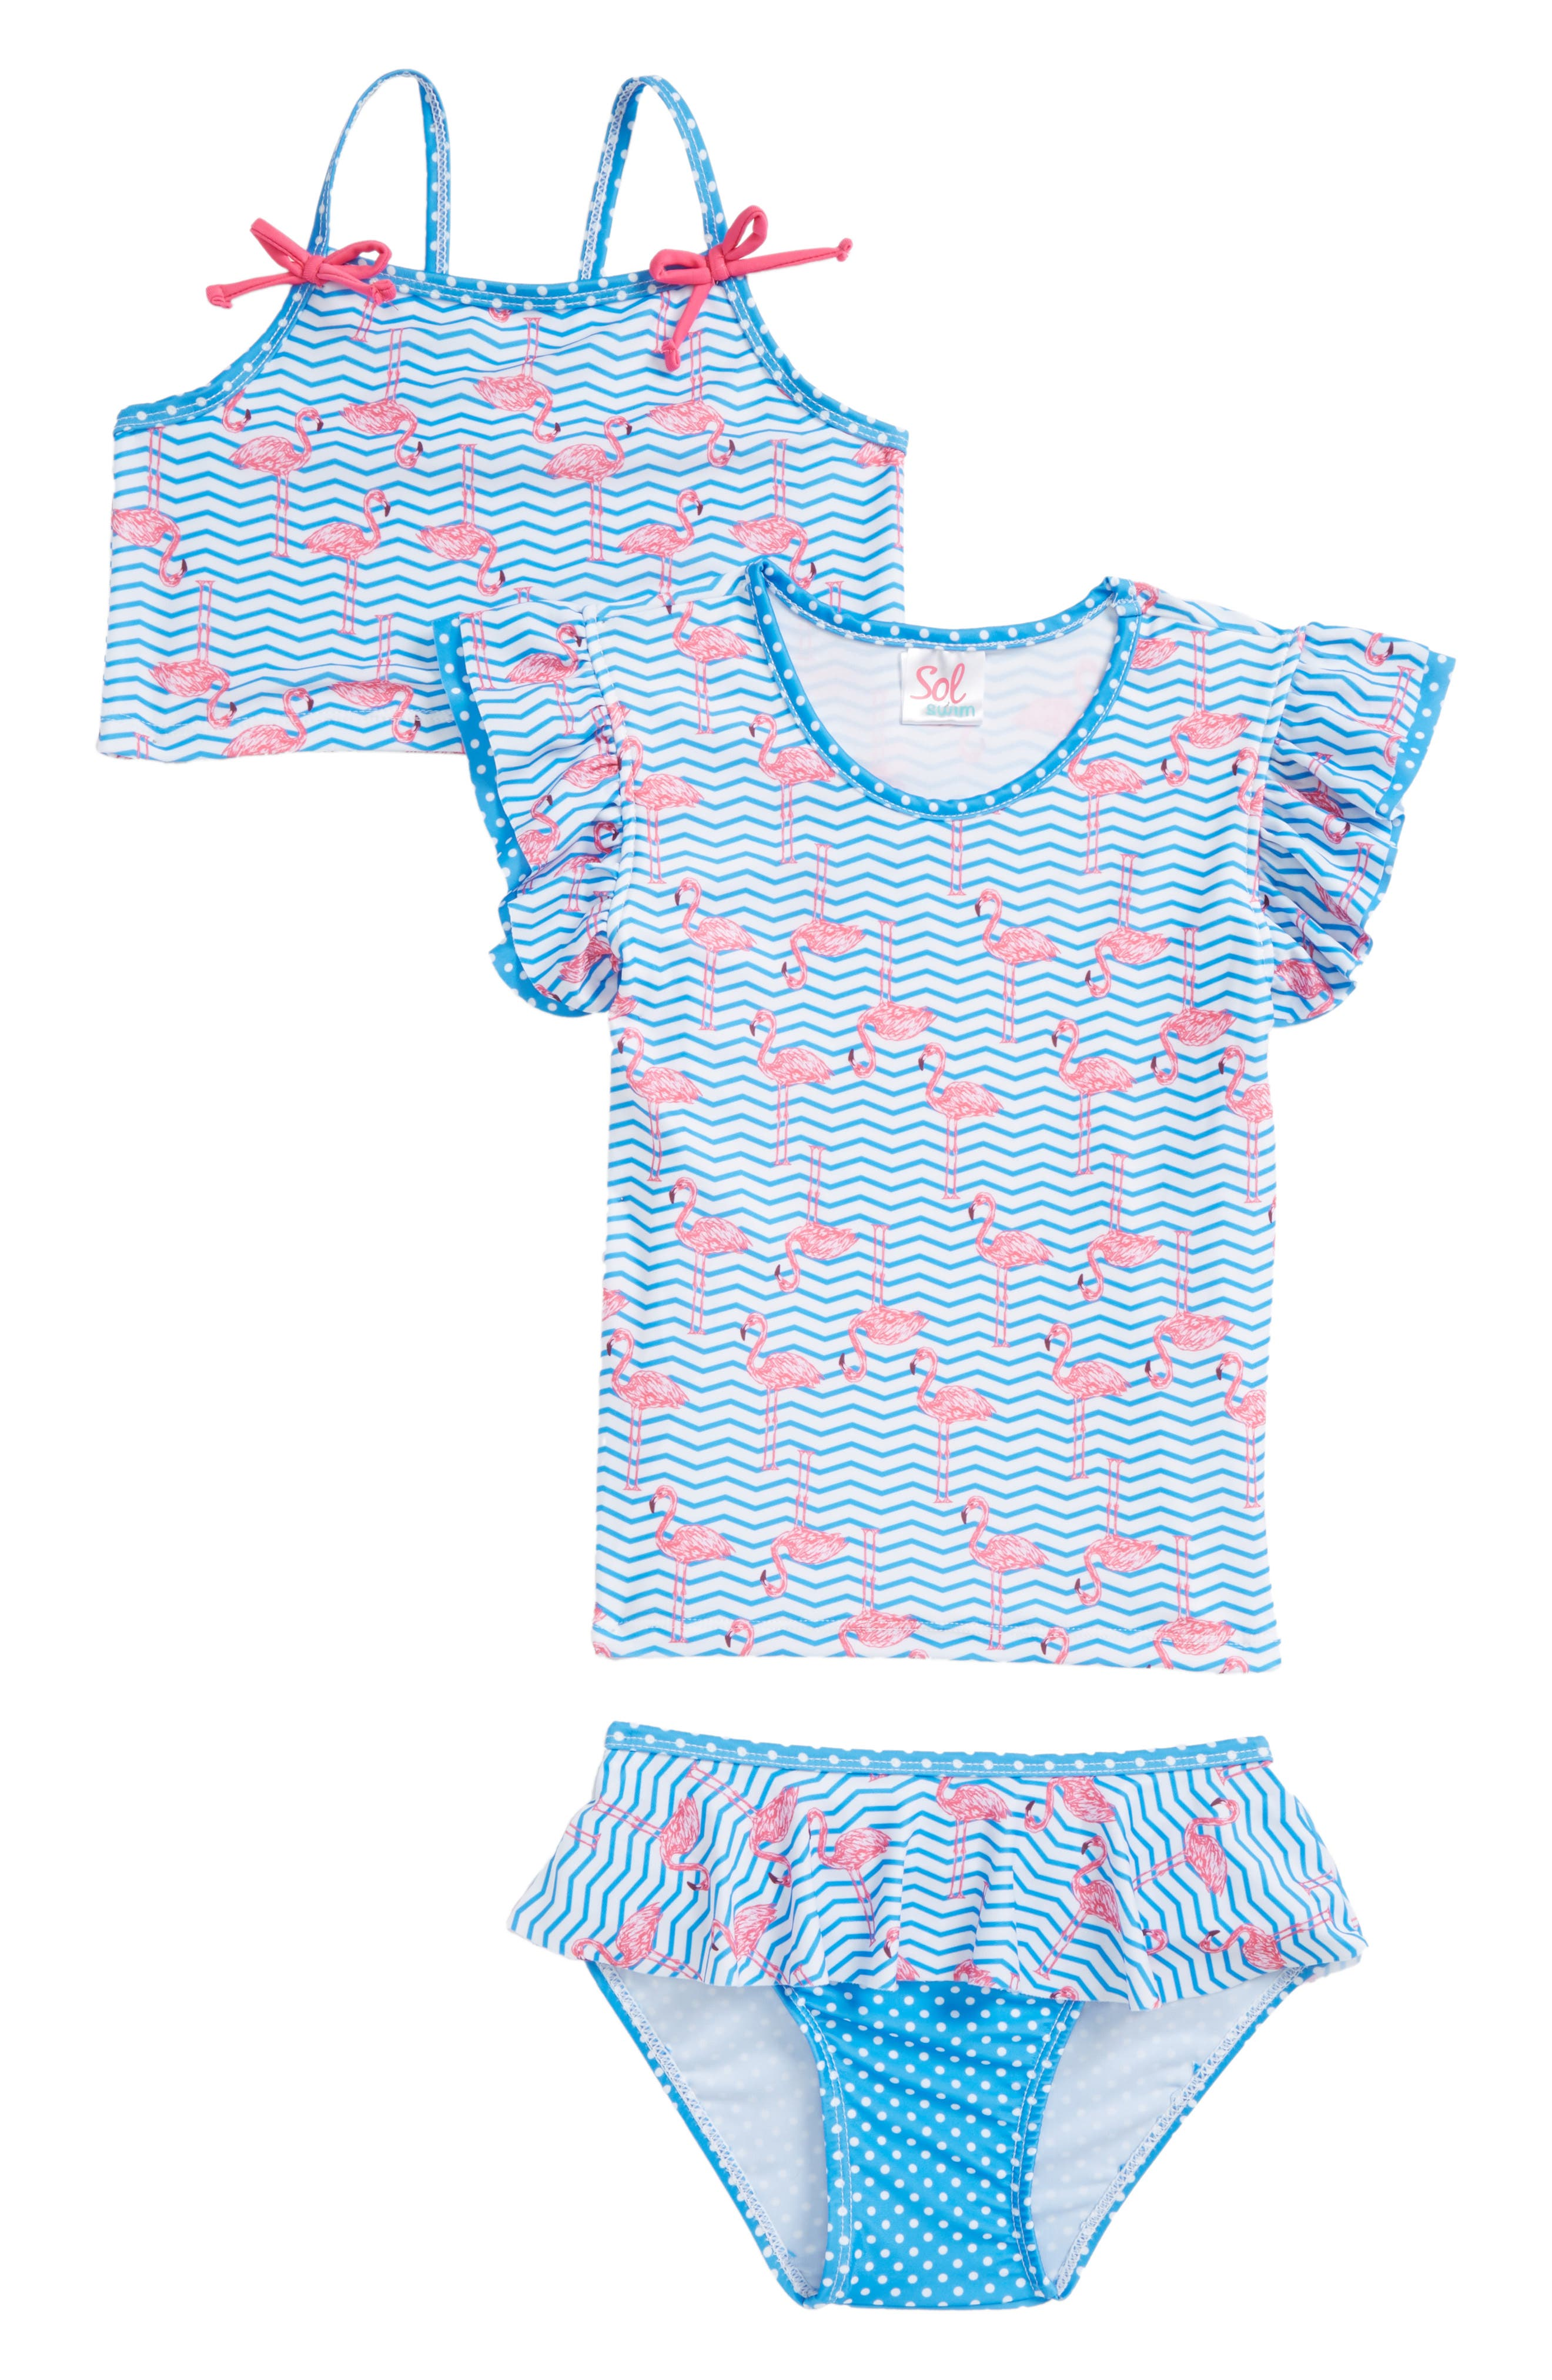 Zig Zag Flamingos Two-Piece Swimsuit with Rashguard,                         Main,                         color, White/ Blue